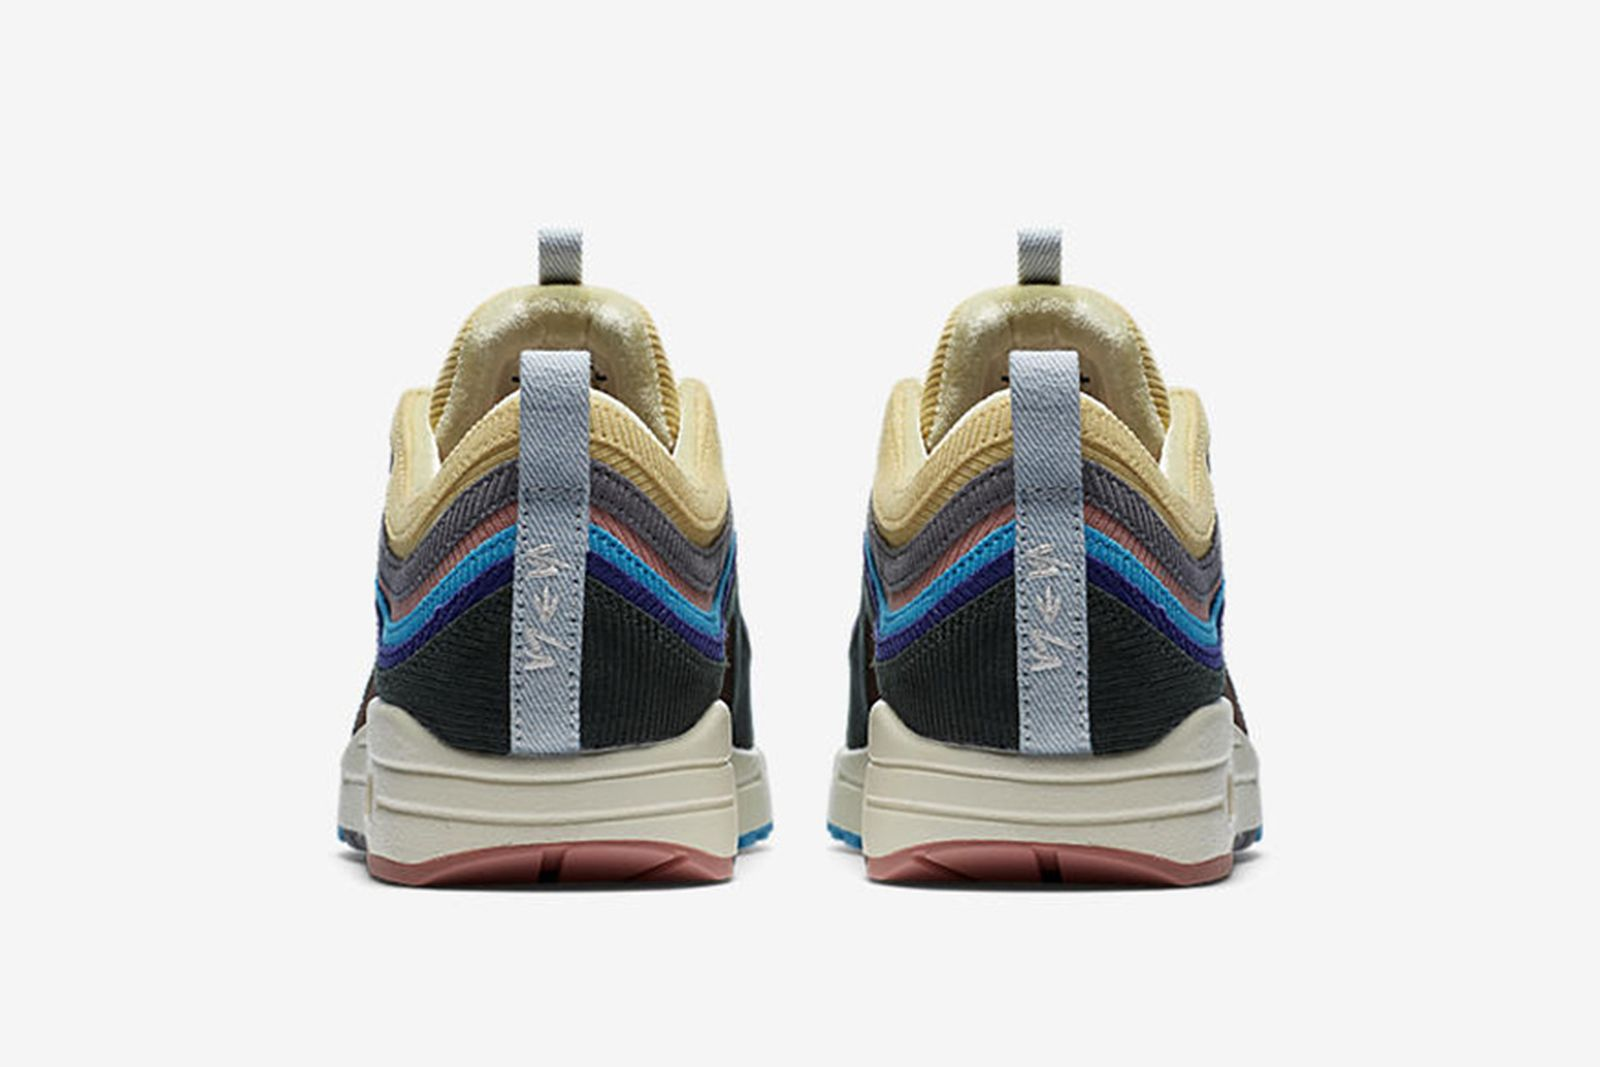 sean-wotherspoon-nike-air-max-1-97-release-date-price-06